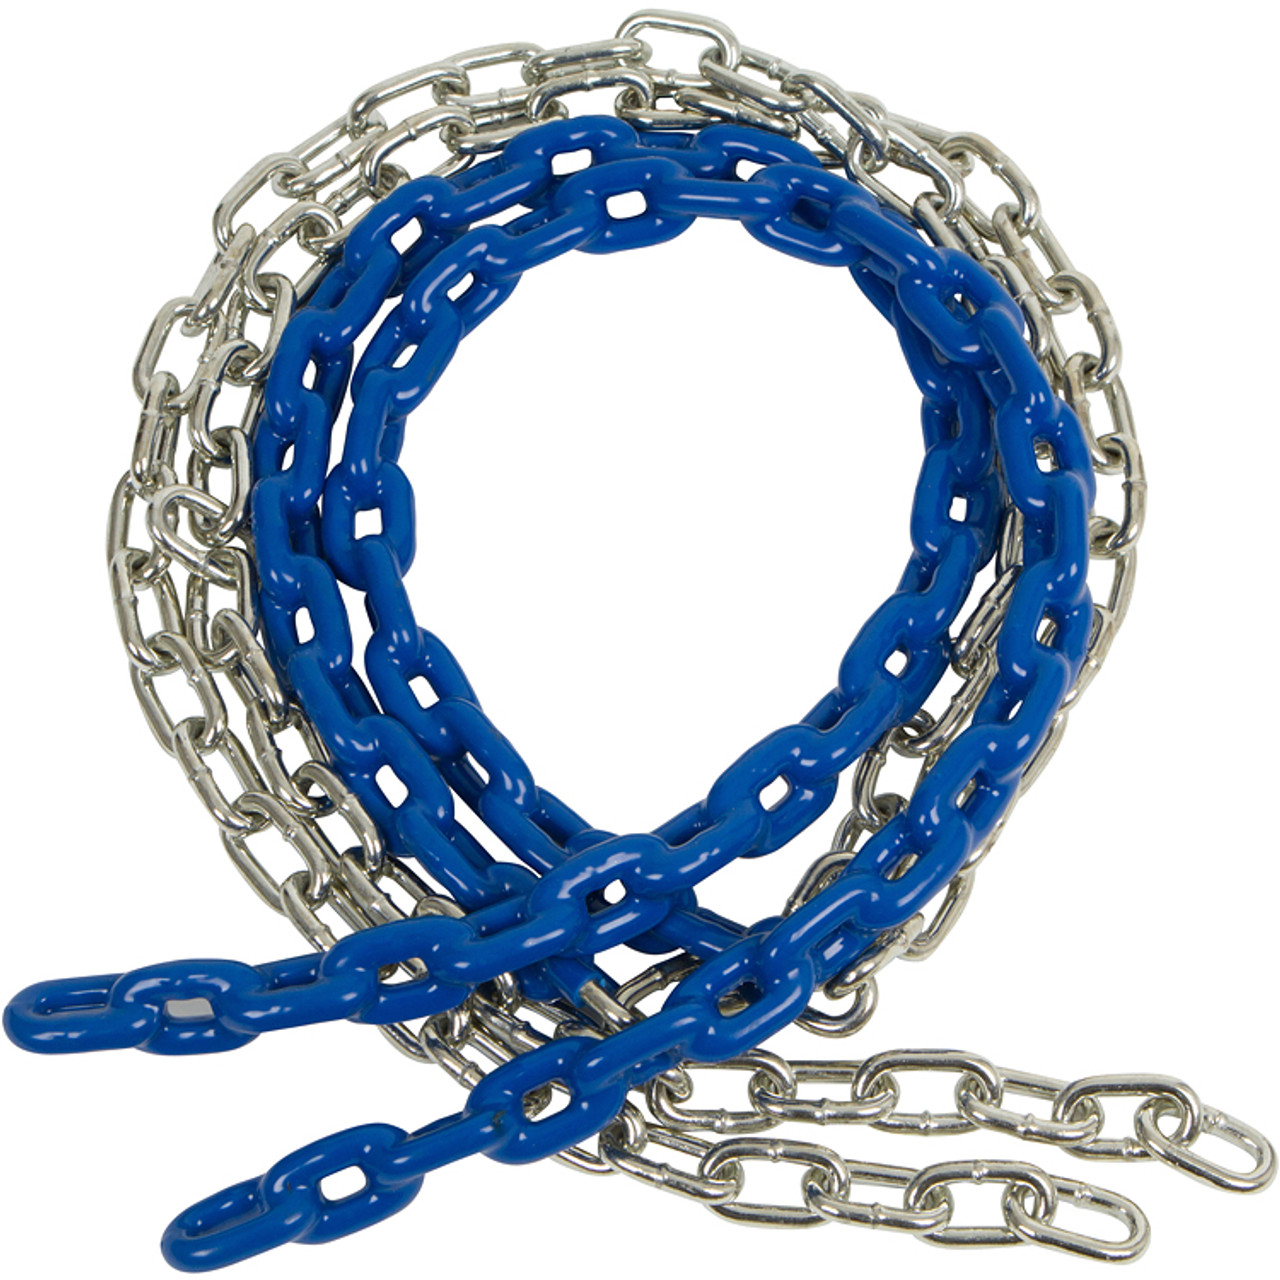 Coated Chain For Swing Set